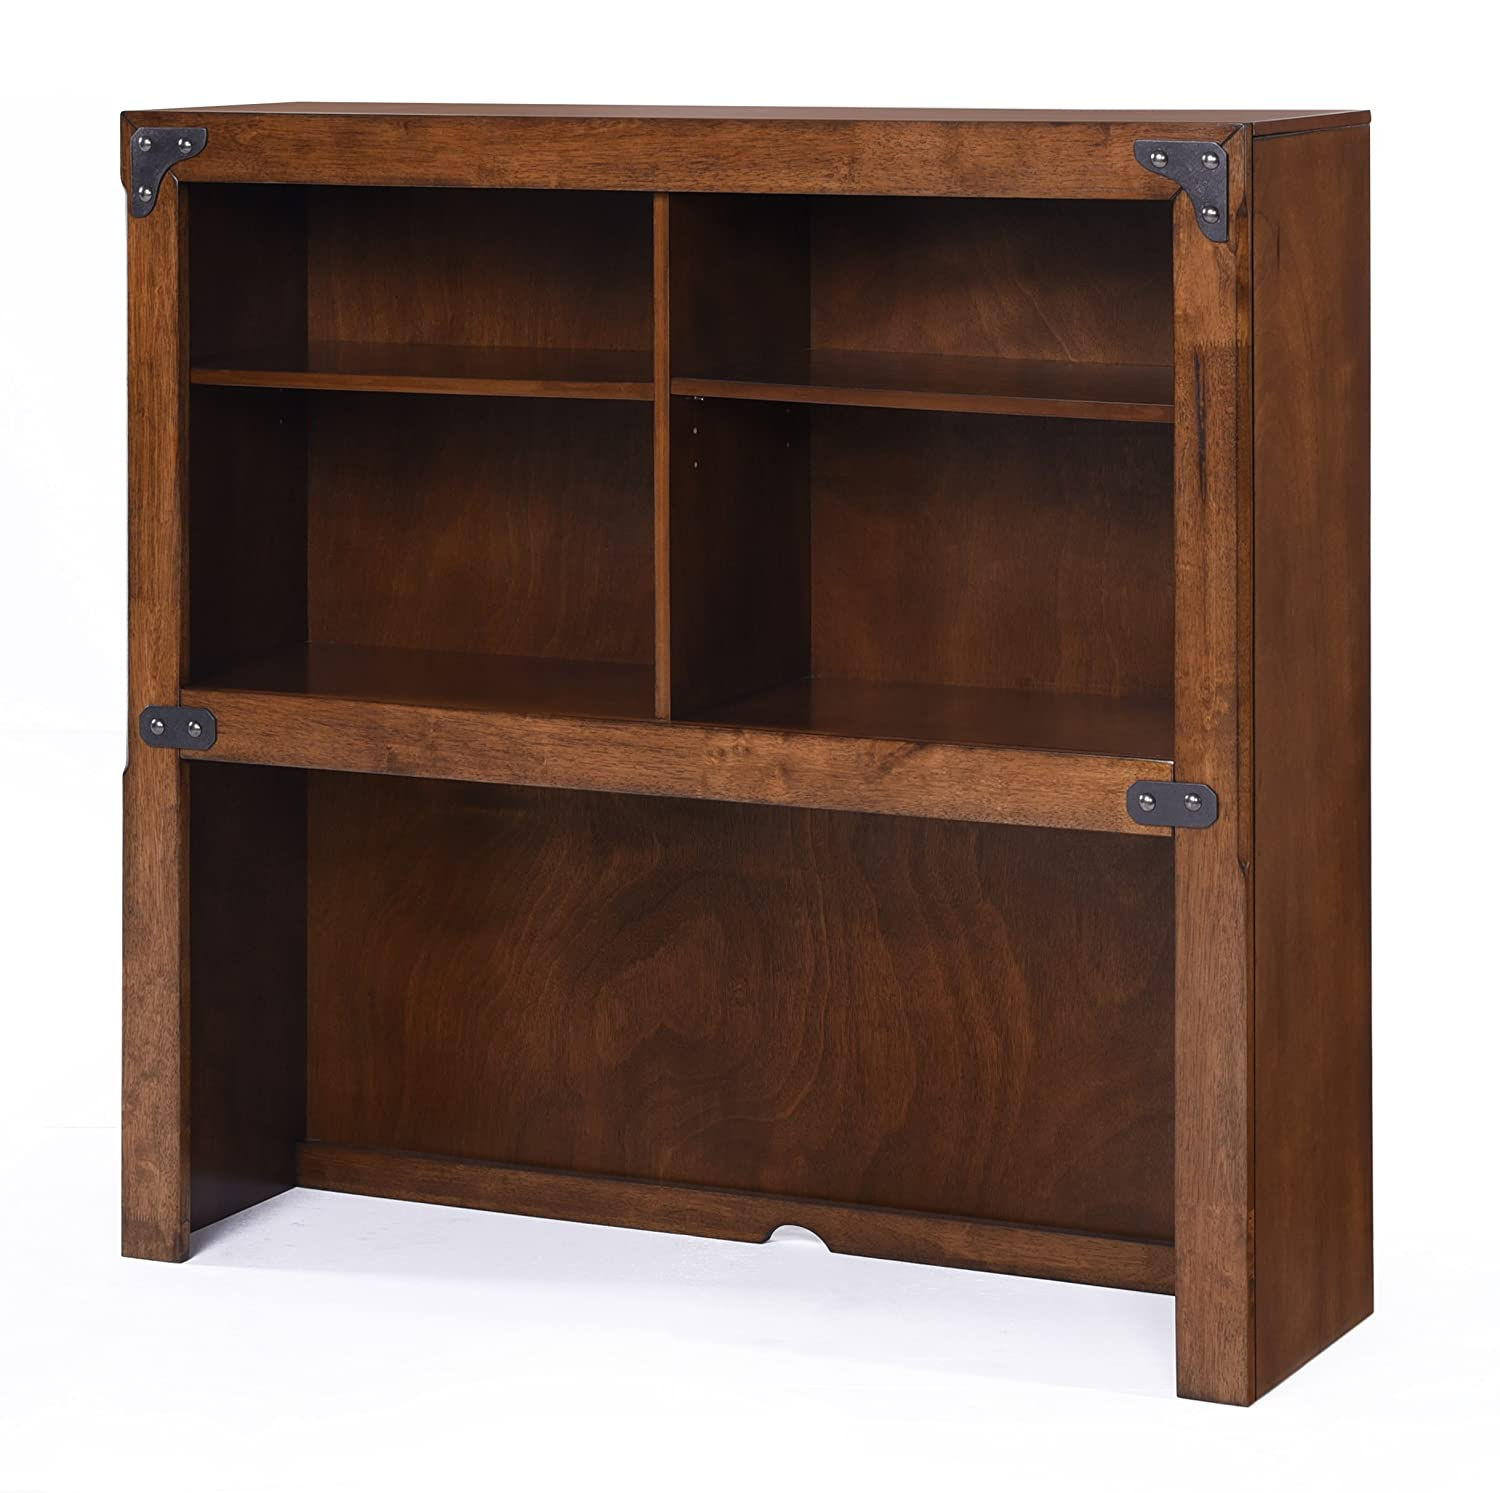 Better Homes and Gardens Union Station Hutch - Rustic Cherry